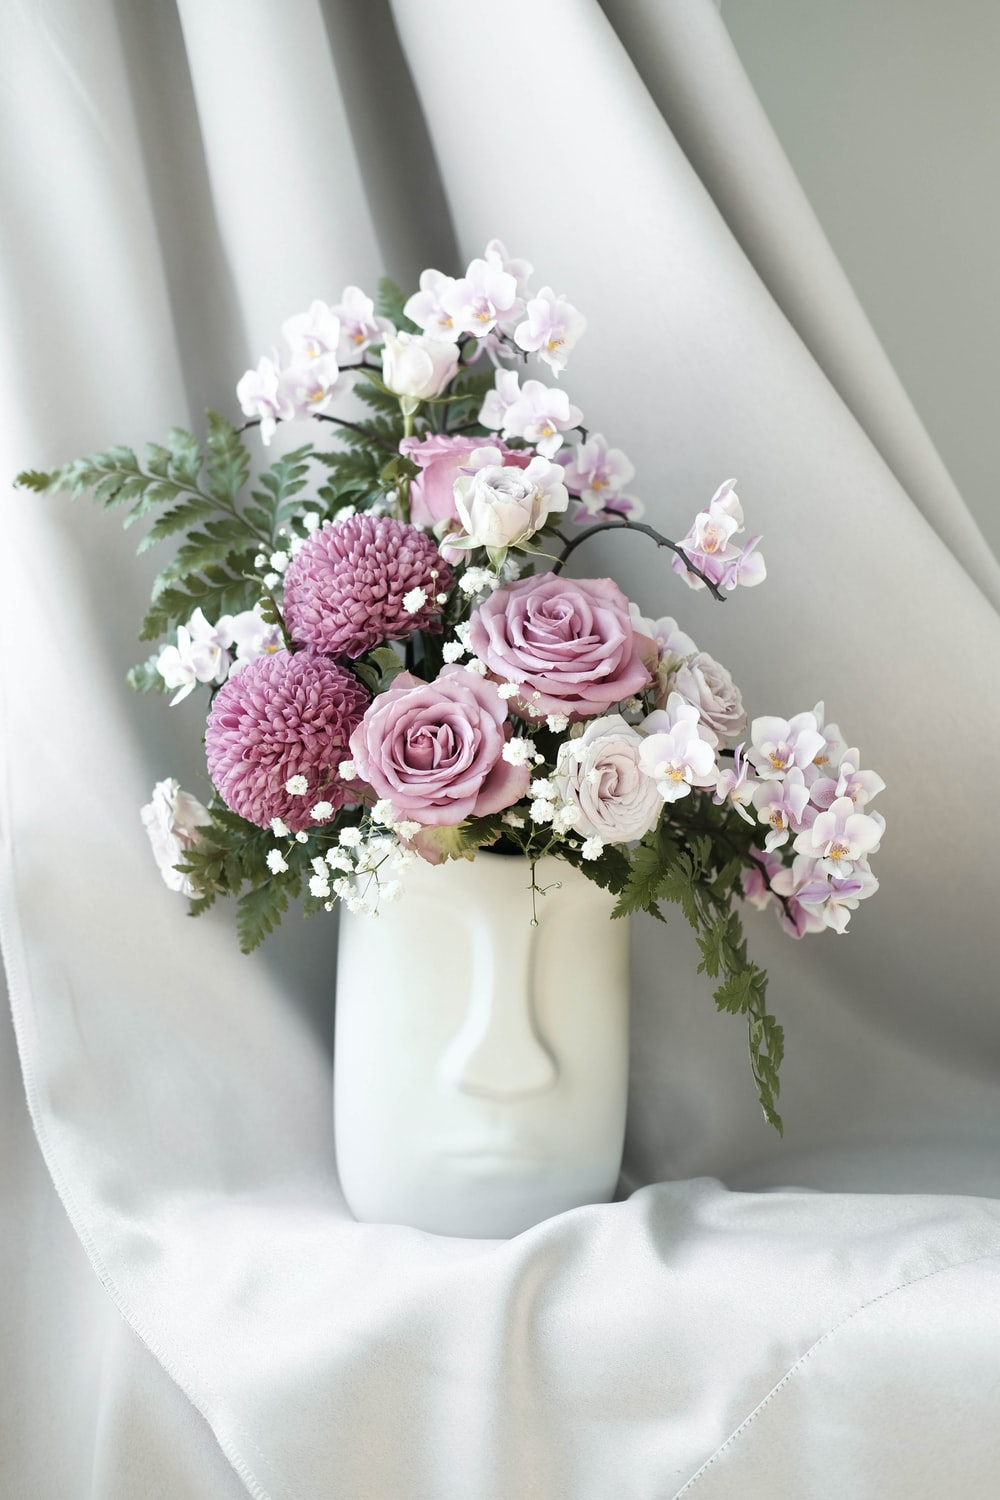 vase of pink-and-white-petaled flower